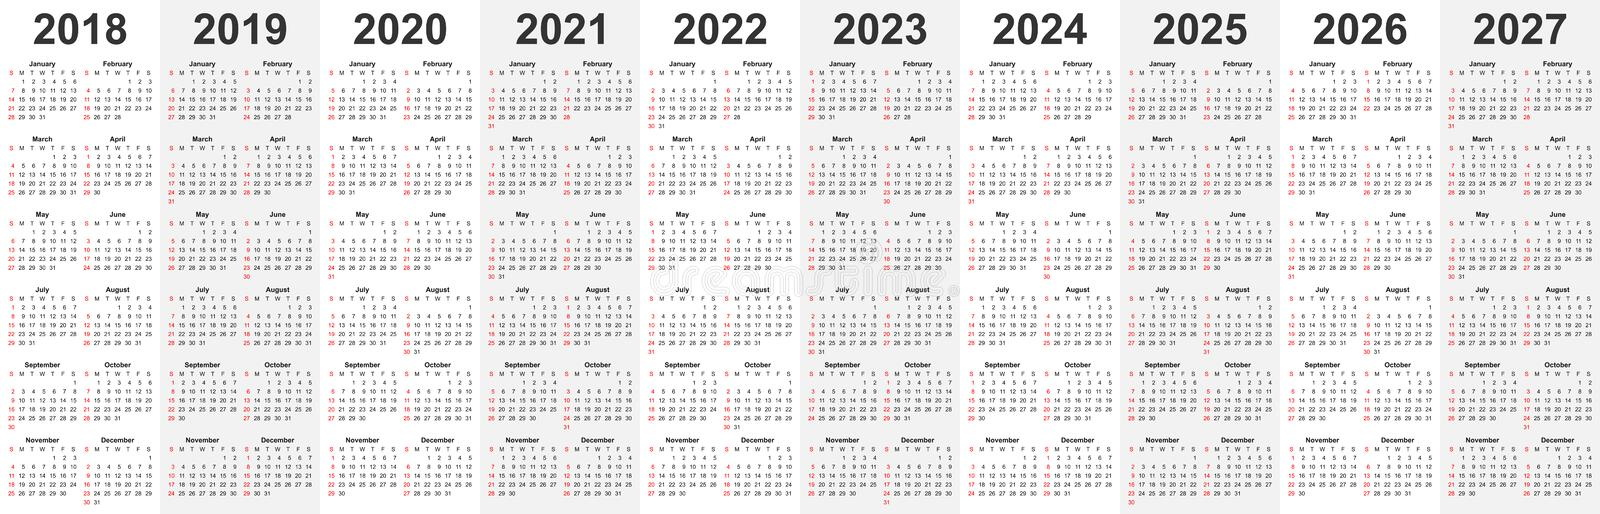 Calendar template set for 2018, 2019, 2020, 2021, 2022, 2023, 2024, 2025, 2026, and 2027 years in one vector file. stock illustration